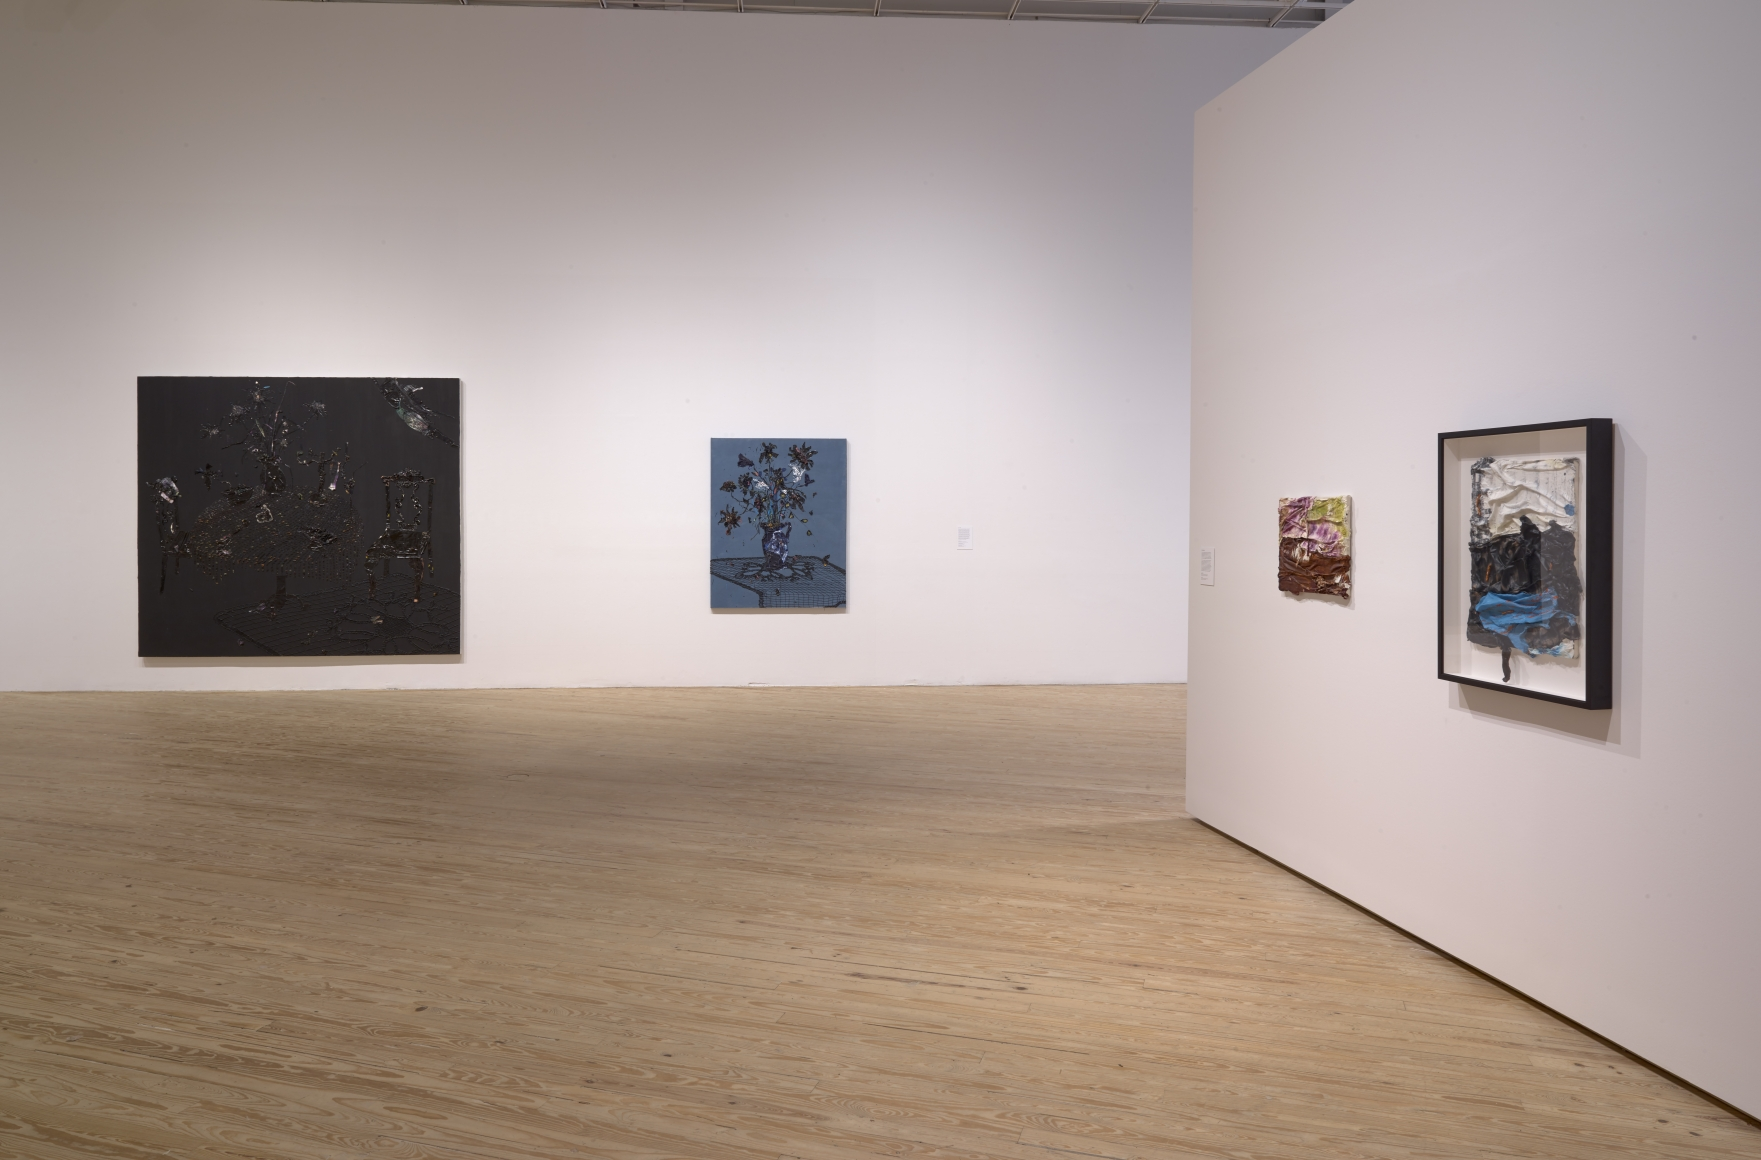 Angel Otero: Everything and Nothing, Installation view, Contemporary Arts Museum Houston, Houston, Texas